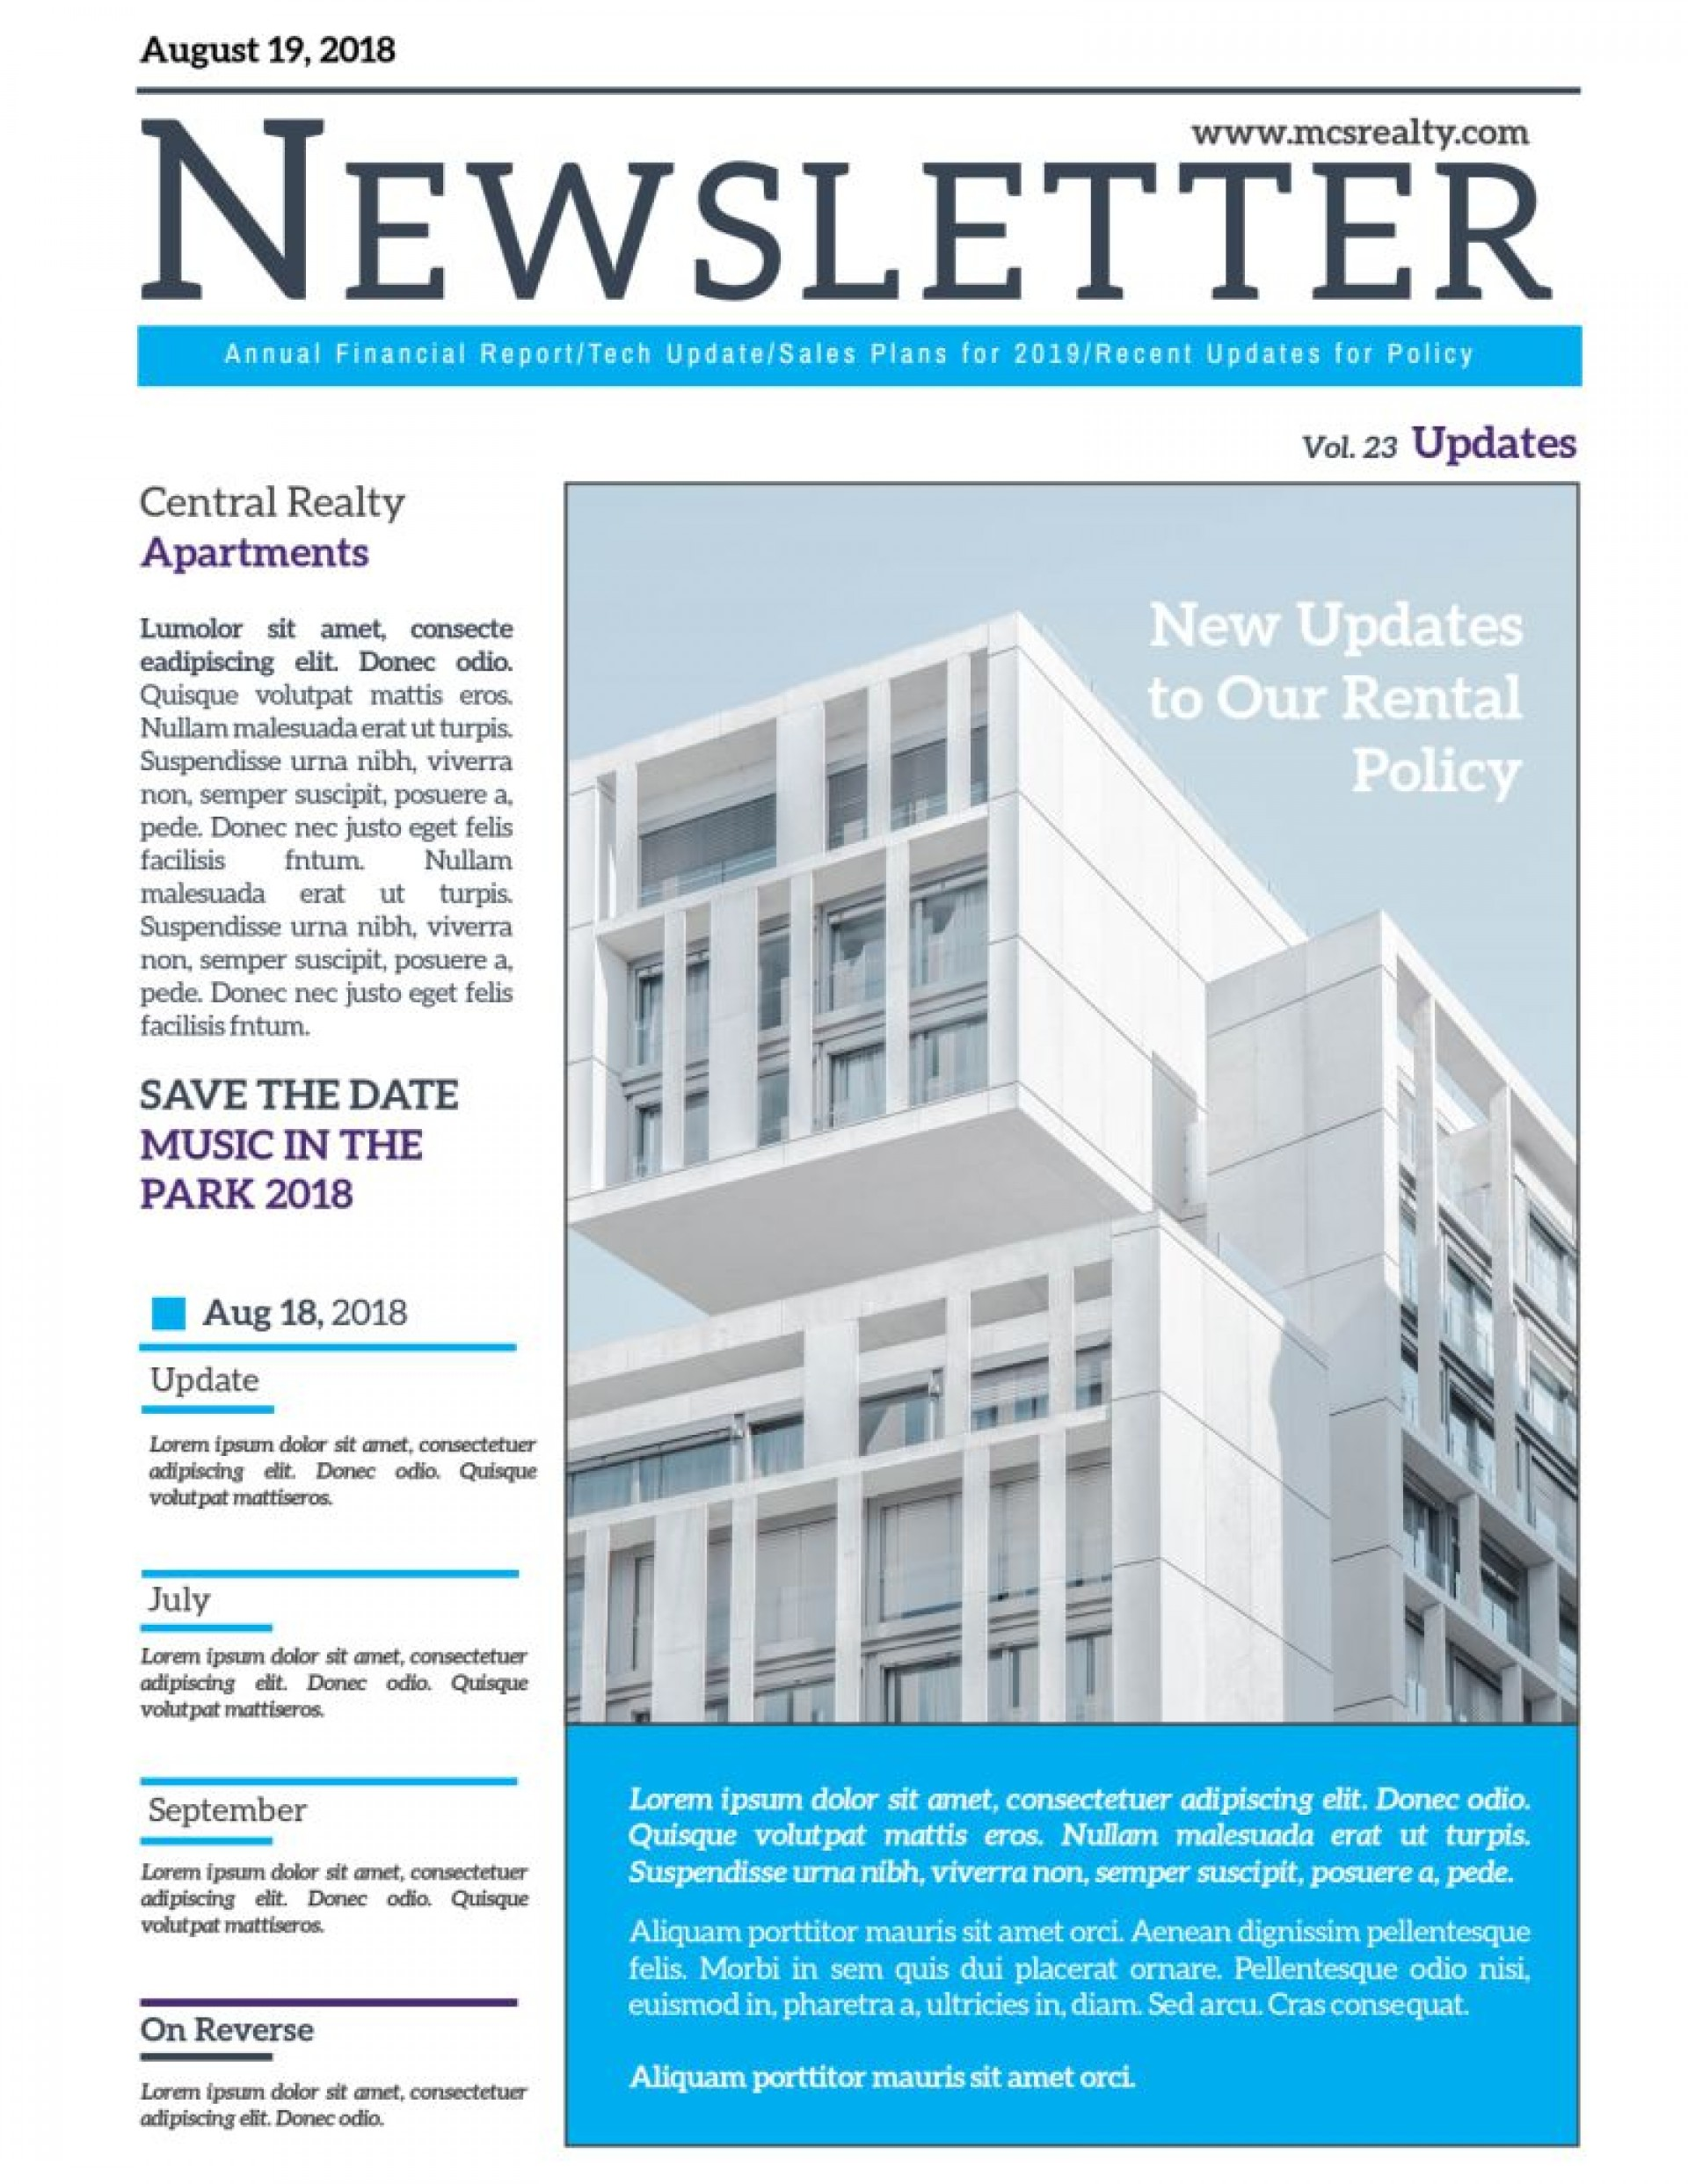 004 Astounding Real Estate Newsletter Template Design  Templates Free Printable Best1920